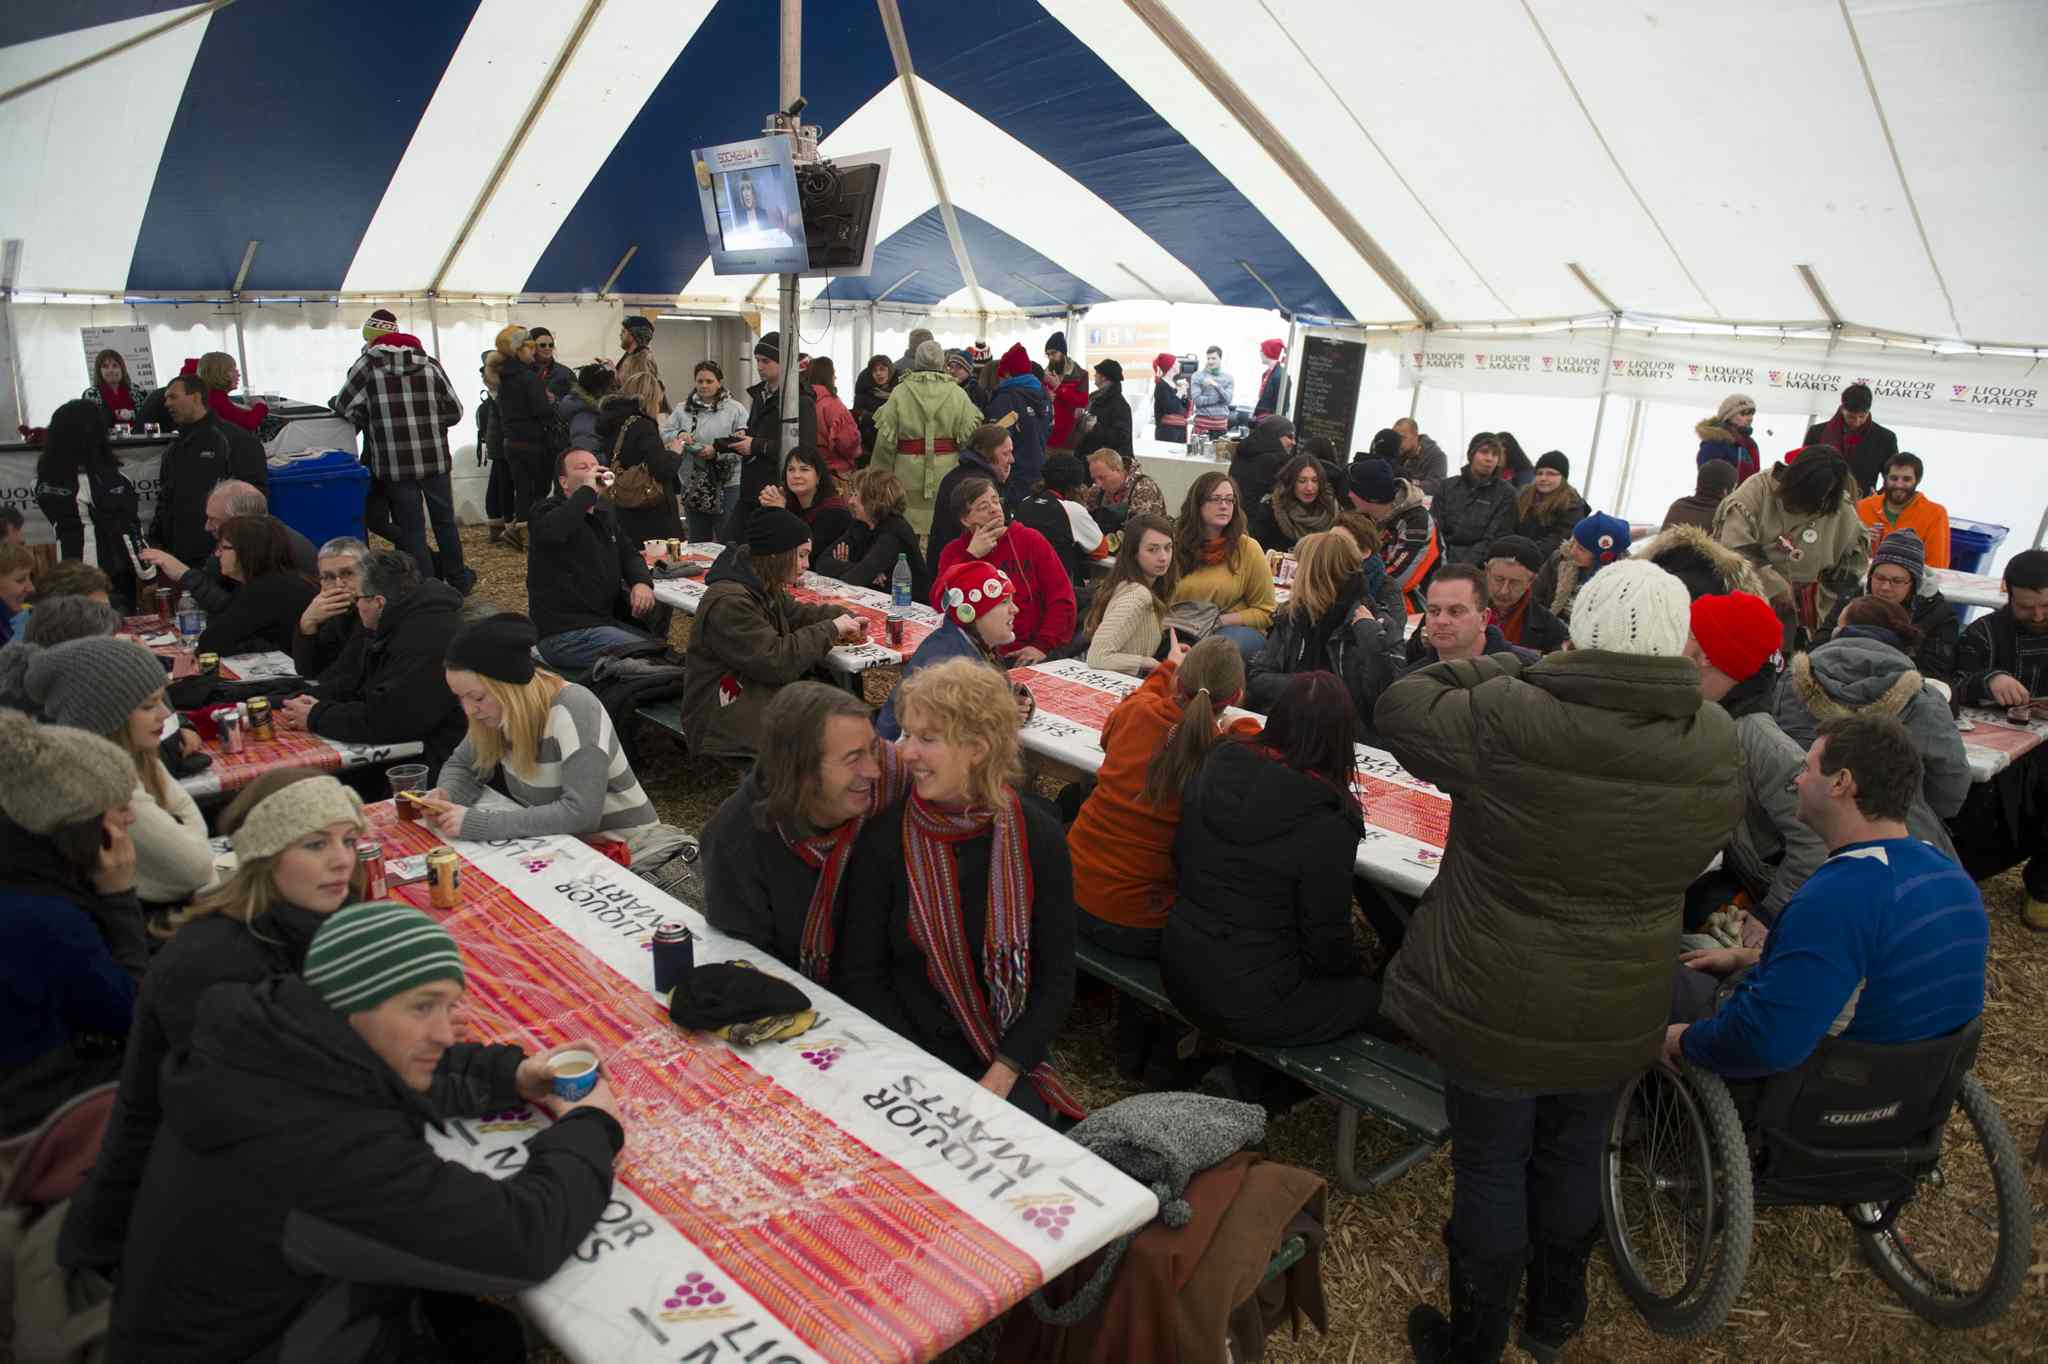 Winnipeggers packed in to see live music and embrace francophone culture on the second-last day of Festival du Voyageur Saturday.